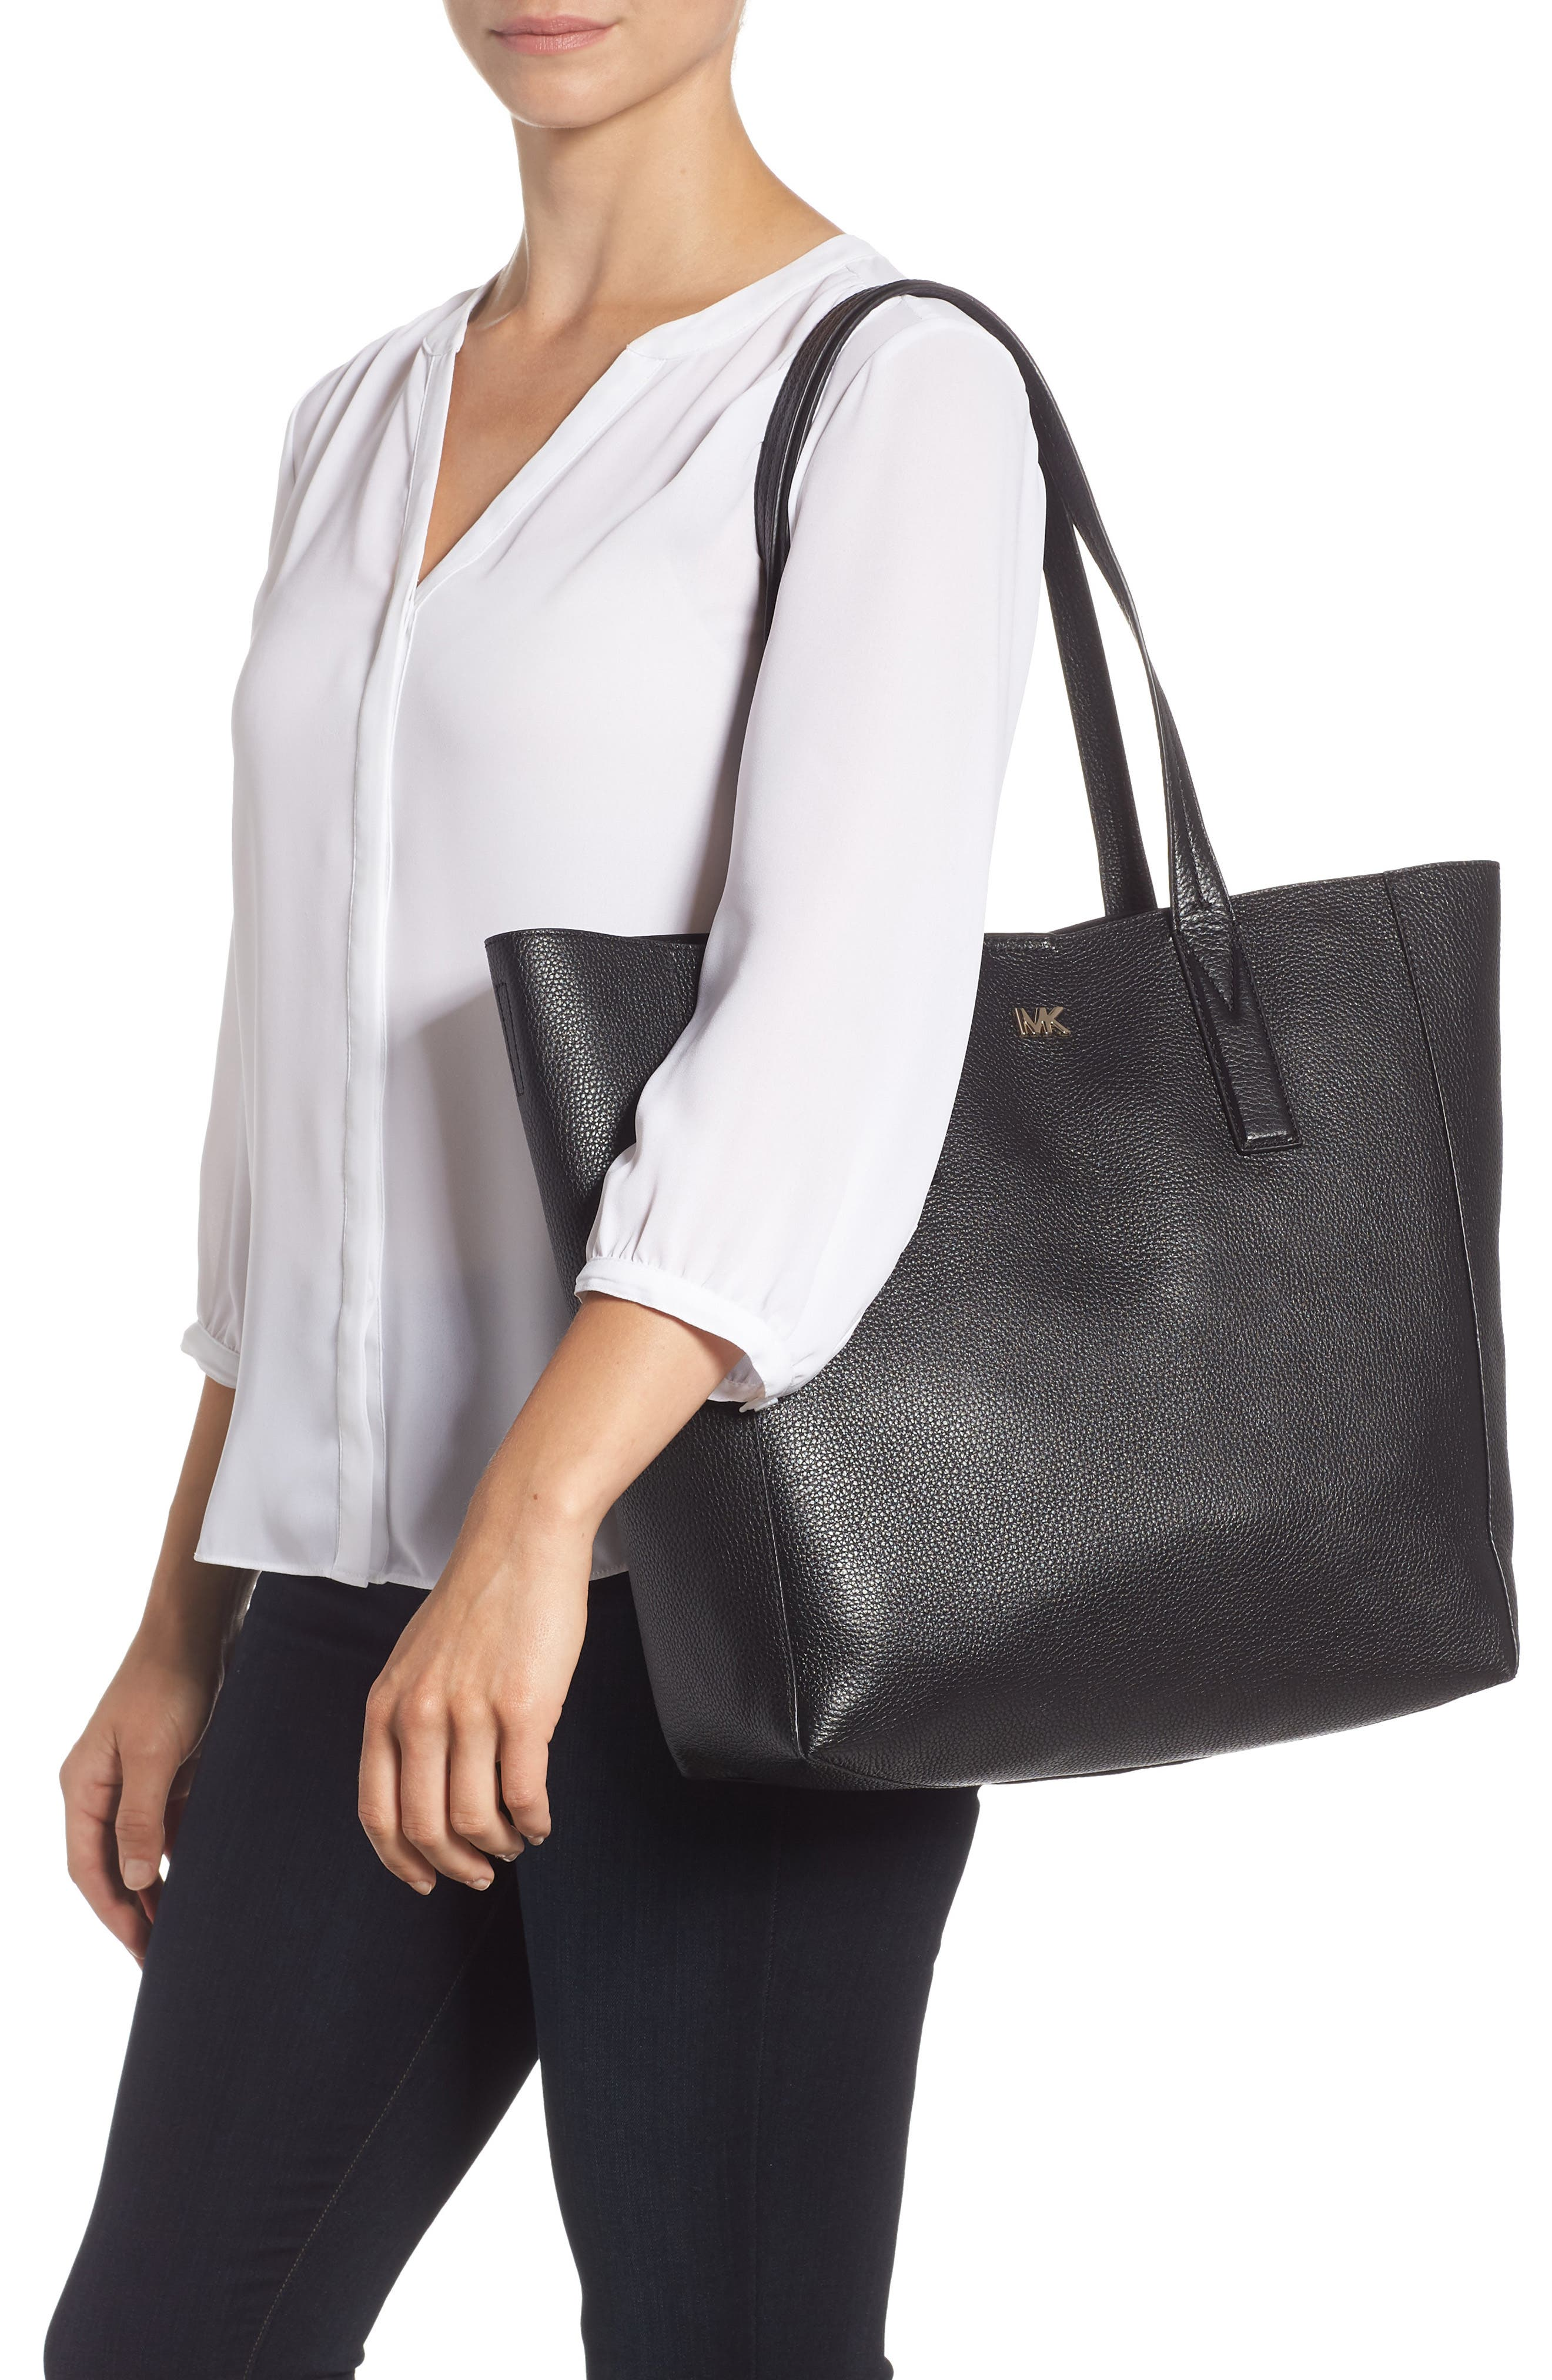 MICHAEL MICHAEL KORS, Large Leather Tote, Alternate thumbnail 2, color, 001